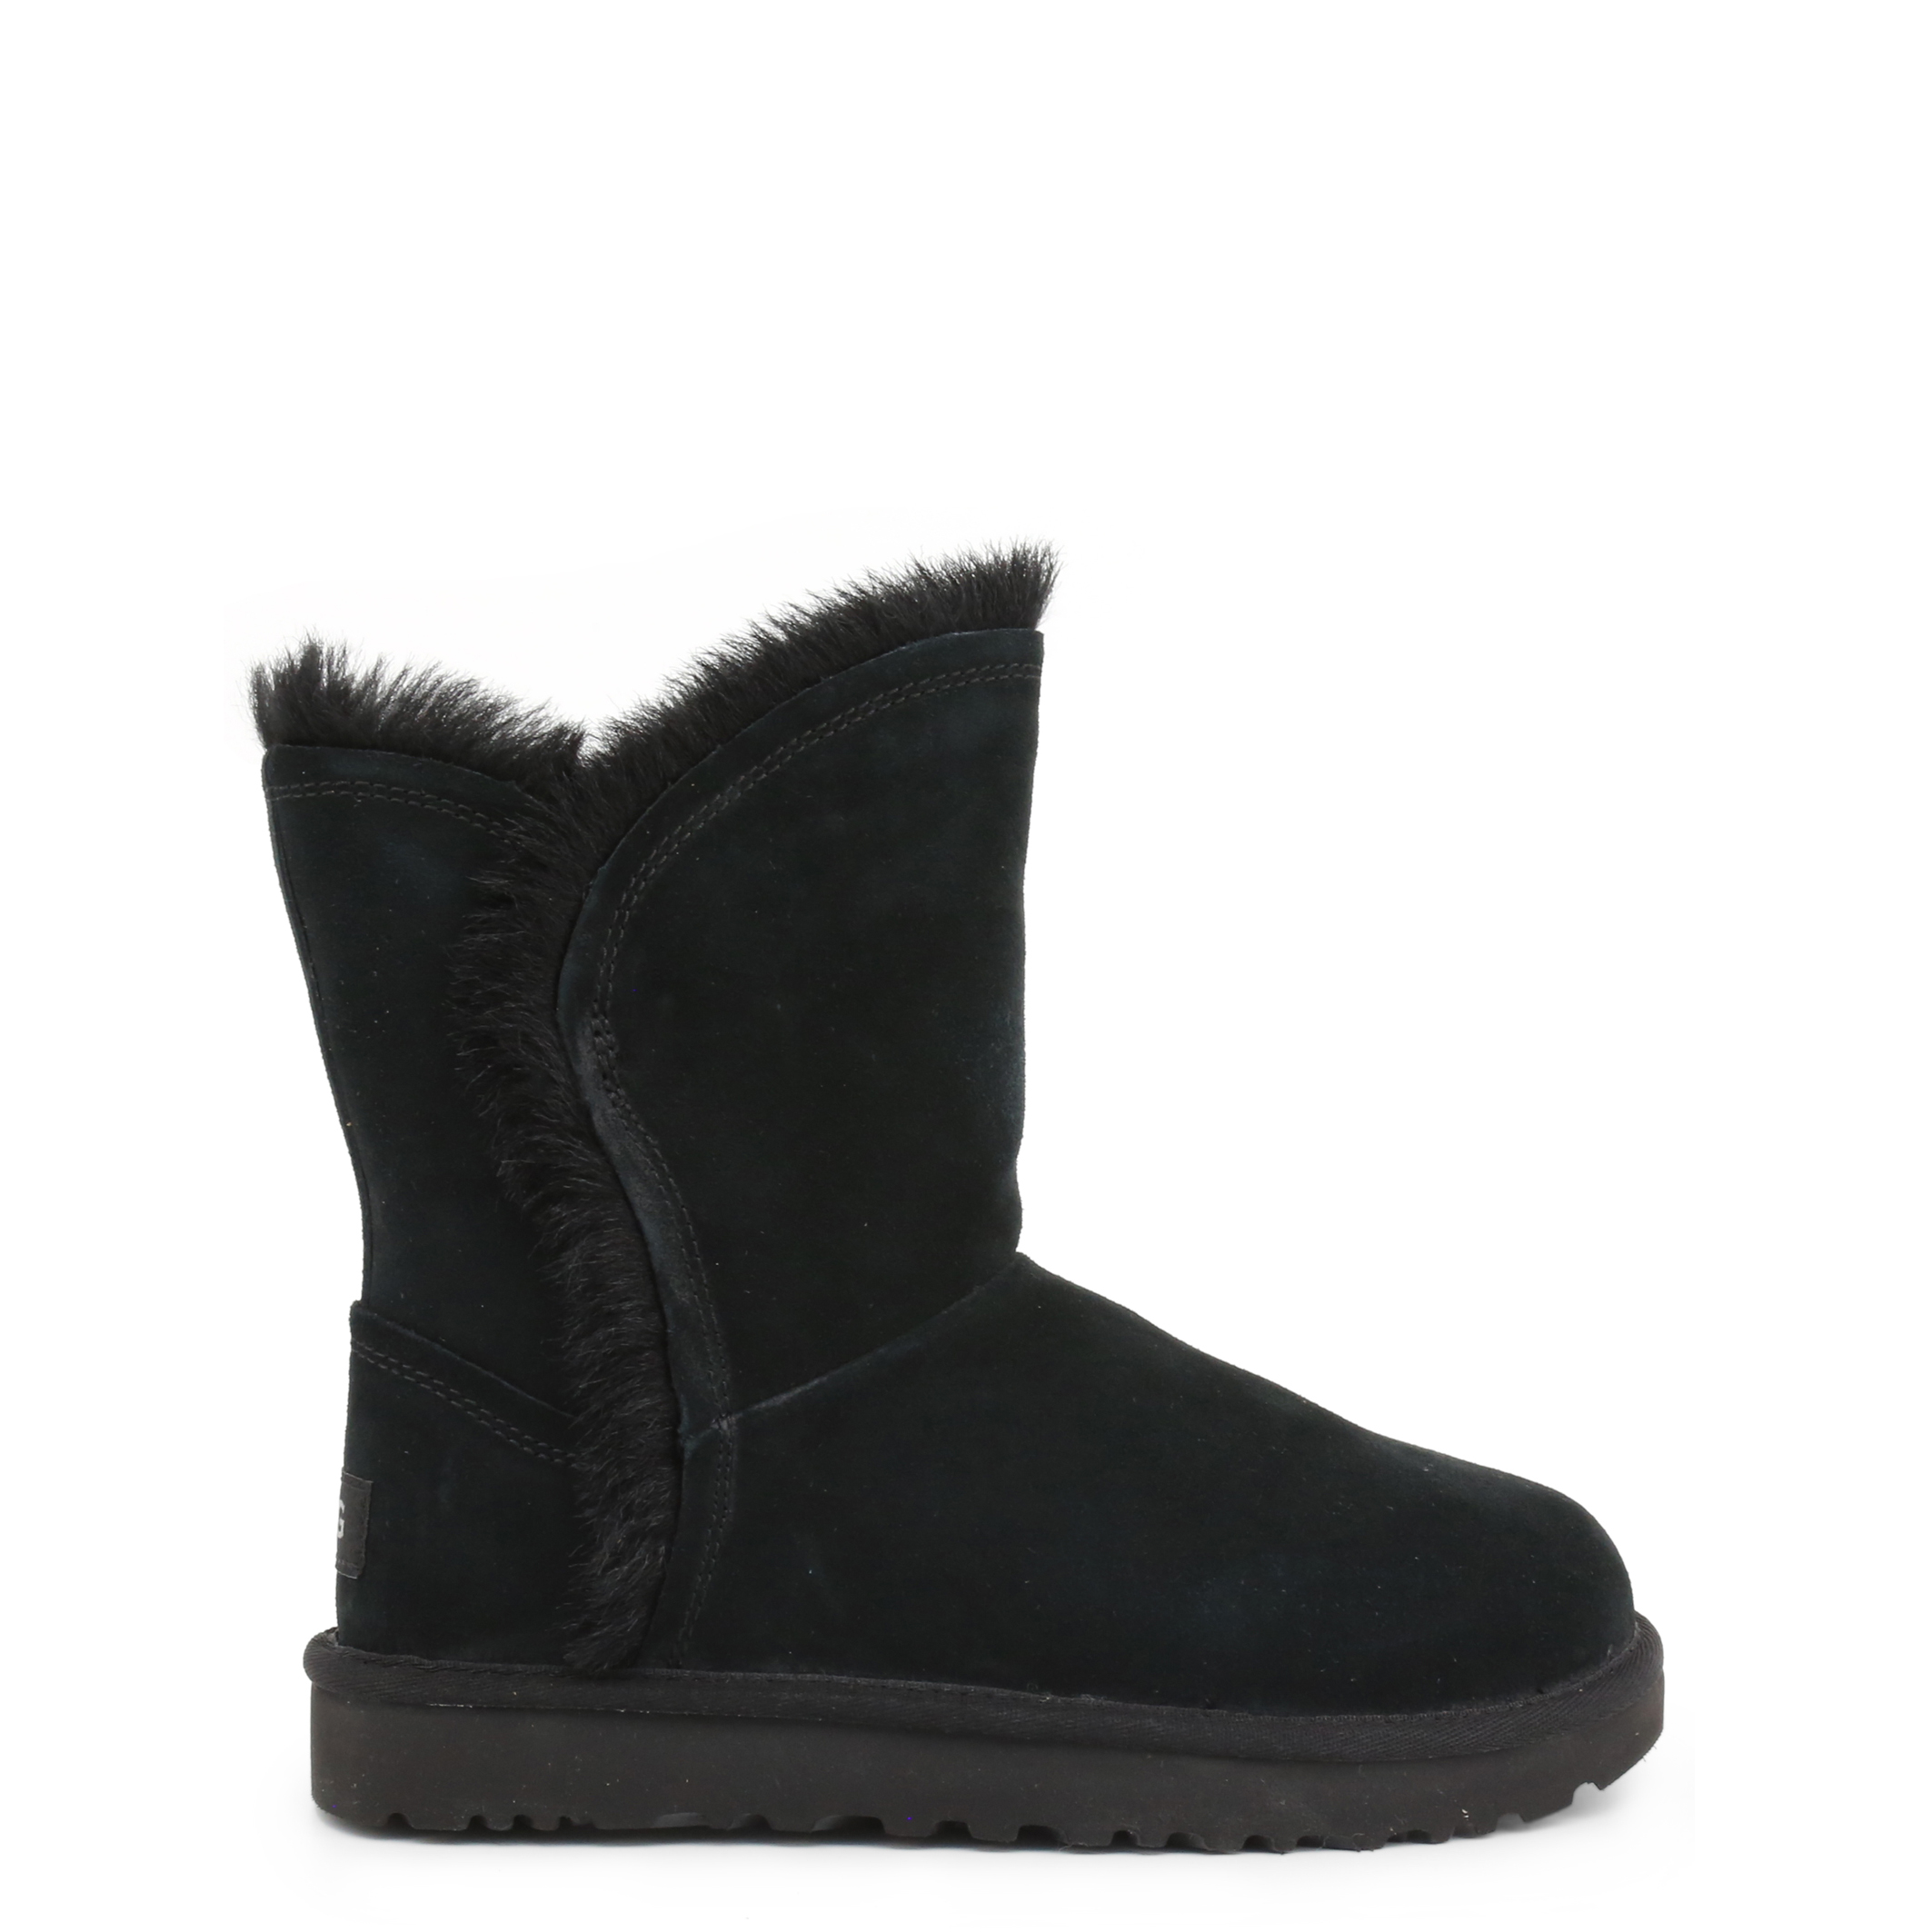 Bottines Fourrées UGG FLUFF_HIGH-LOW_1103746 BLACK Noires